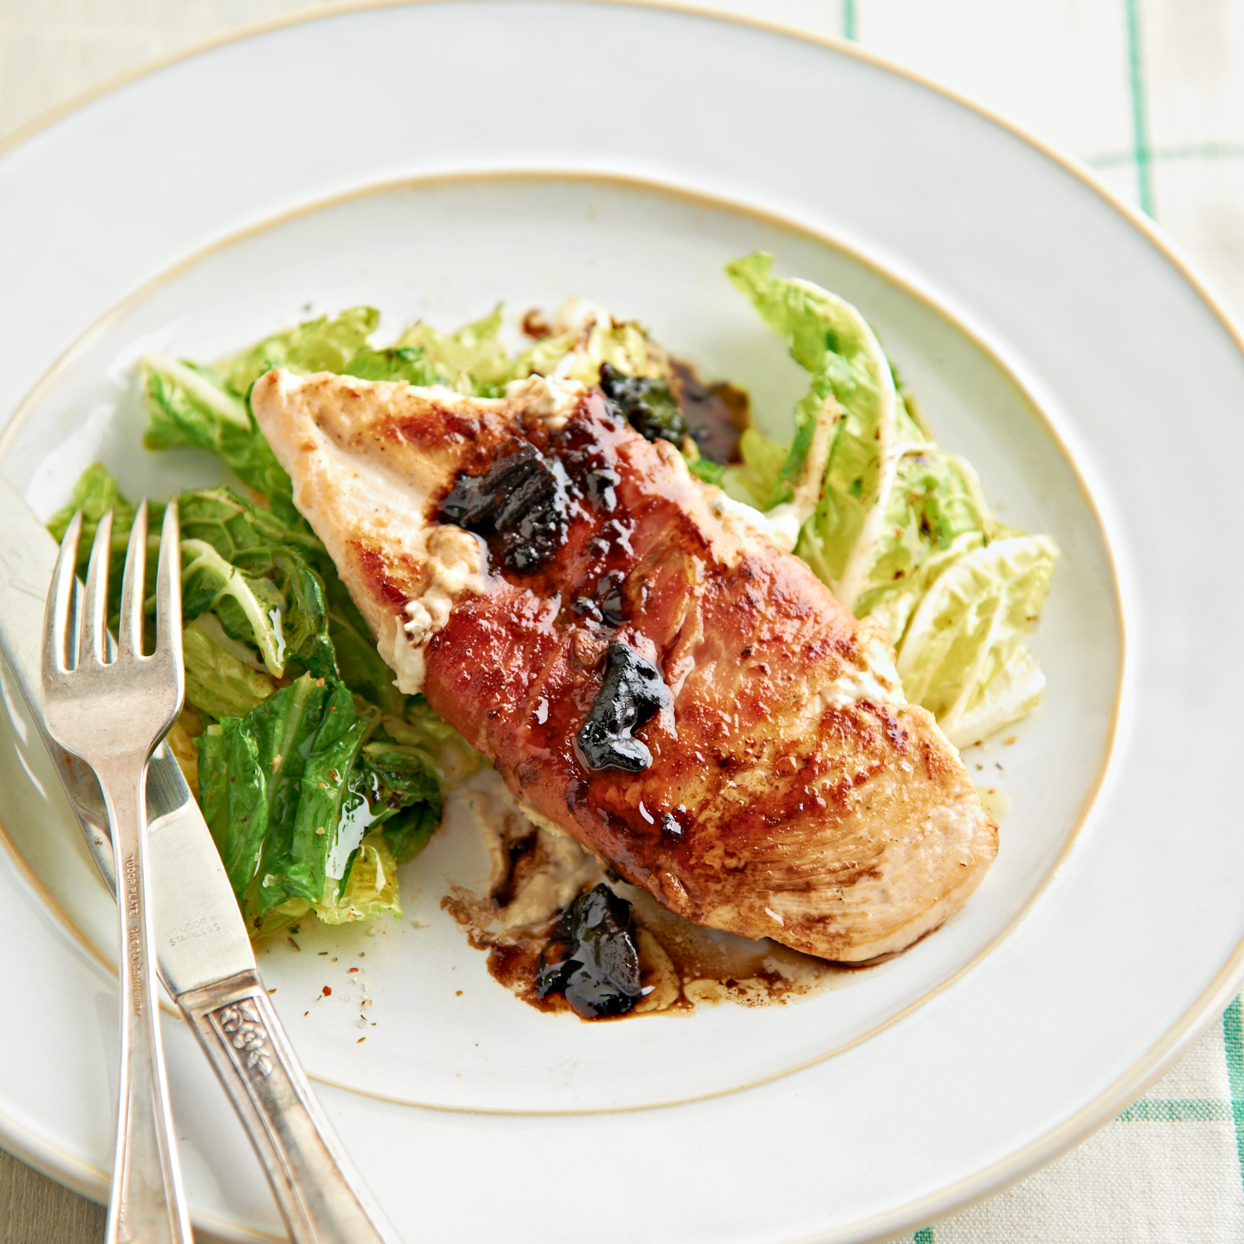 pancetta-wrapped chicken with glazed date sauce